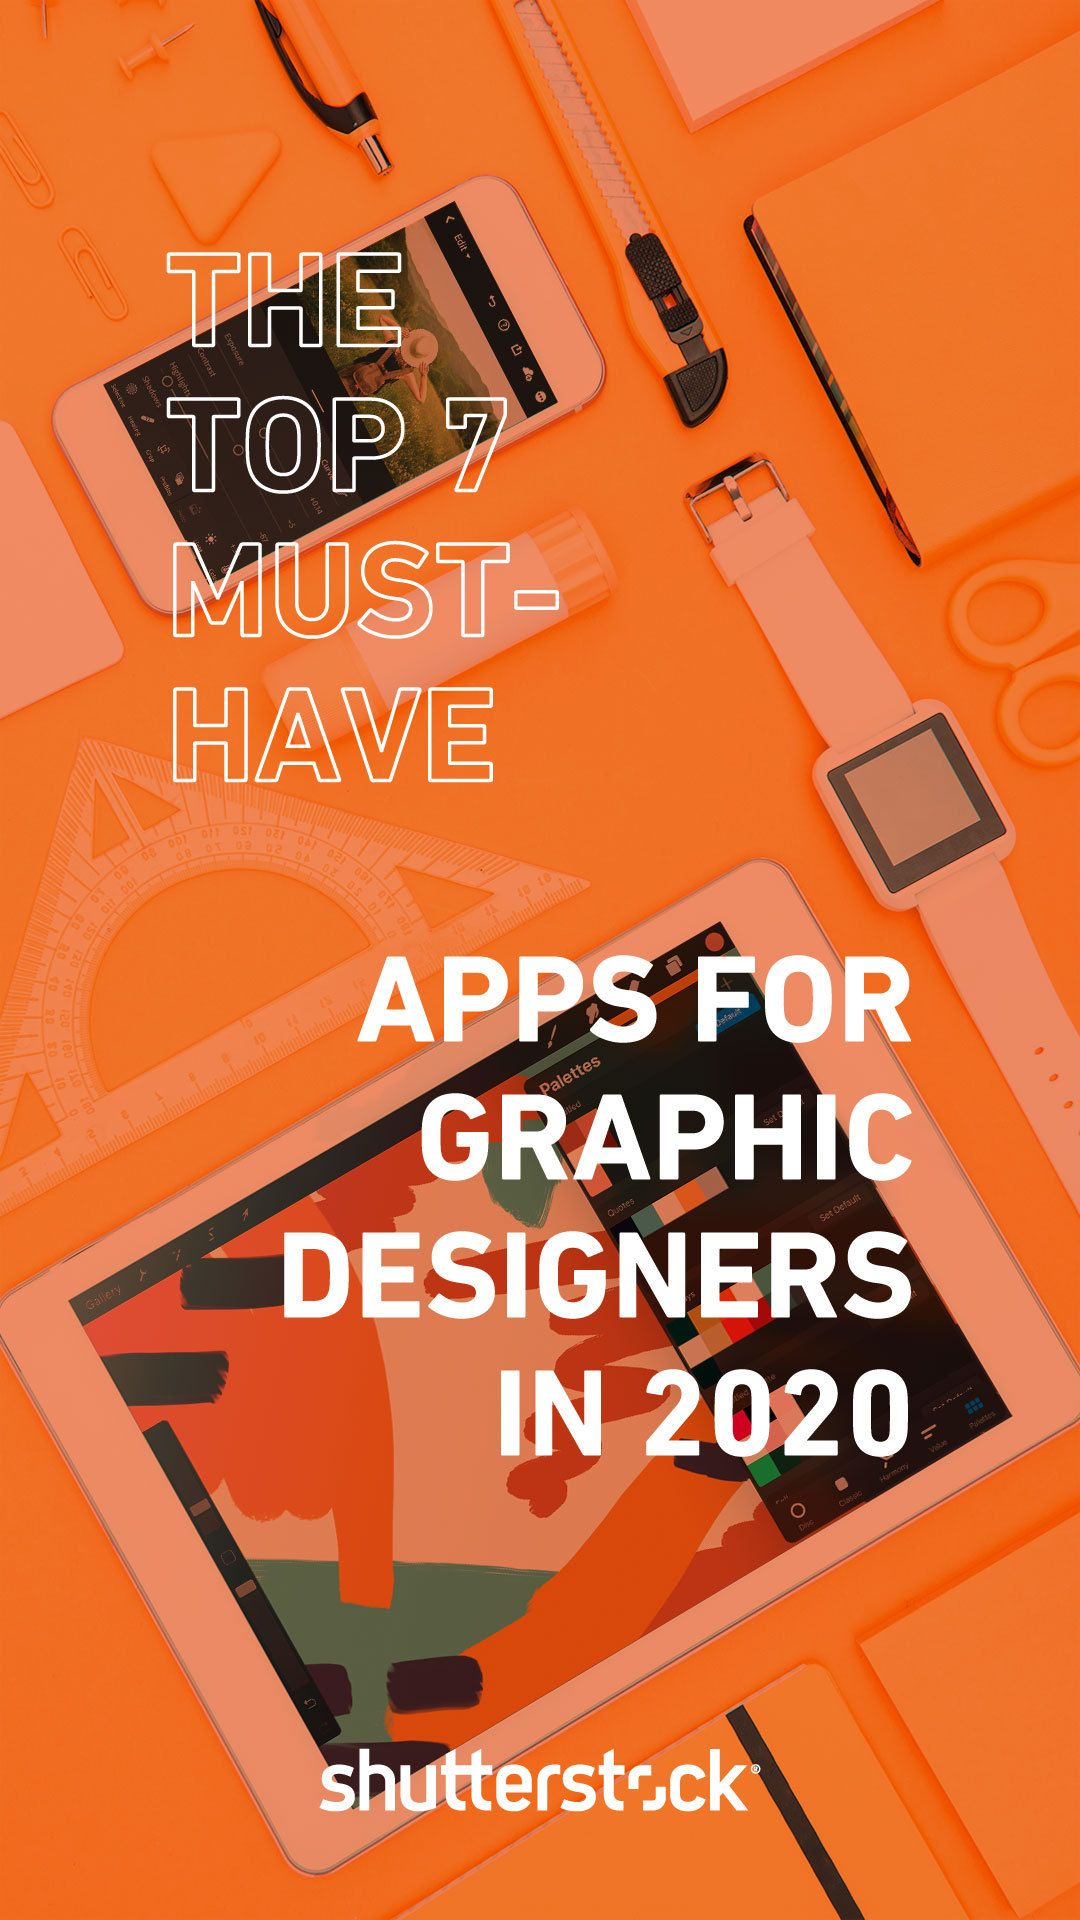 Top 7 MustHave Apps for Graphic Designers in 2020